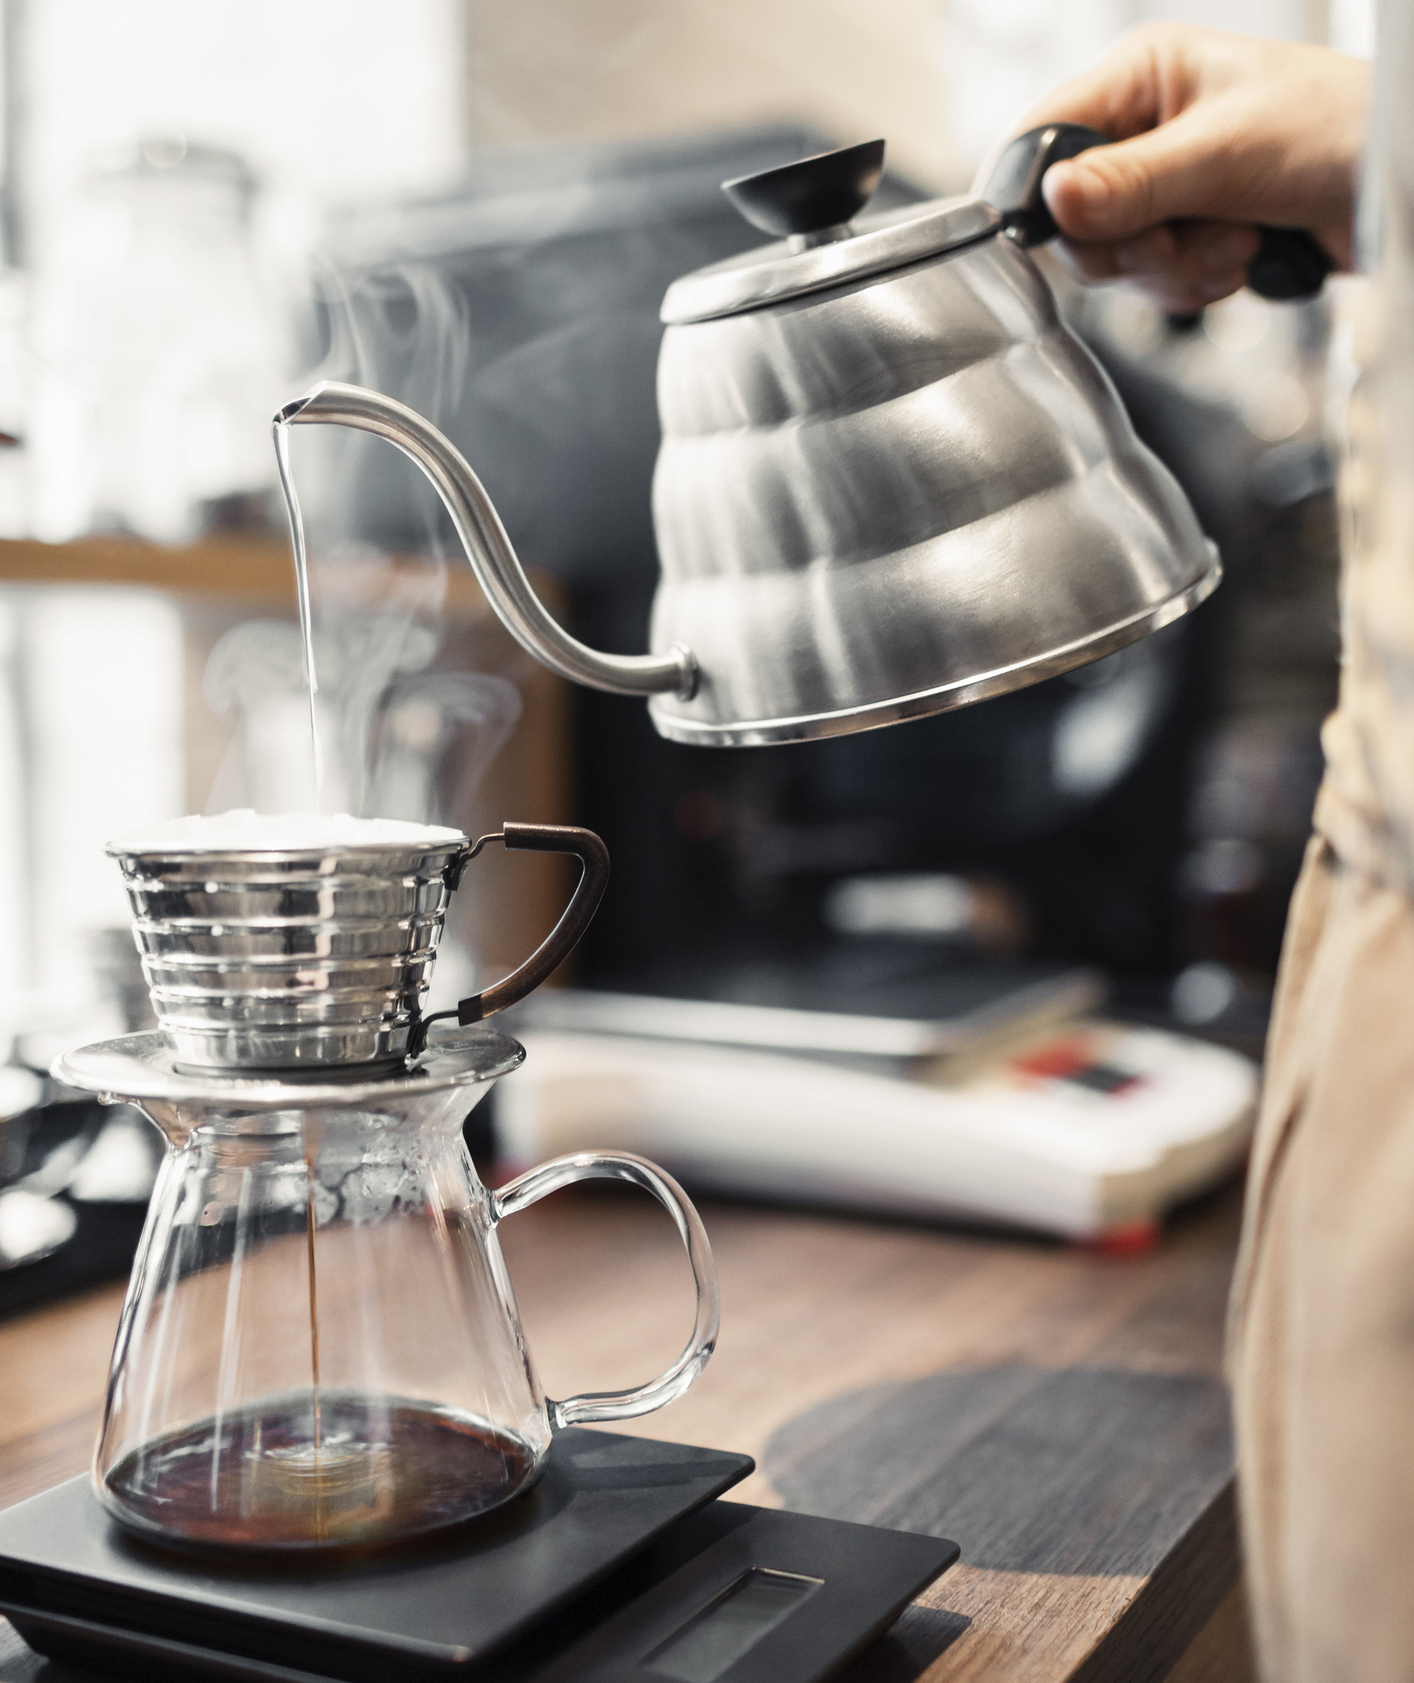 Barista pouring water over coffee